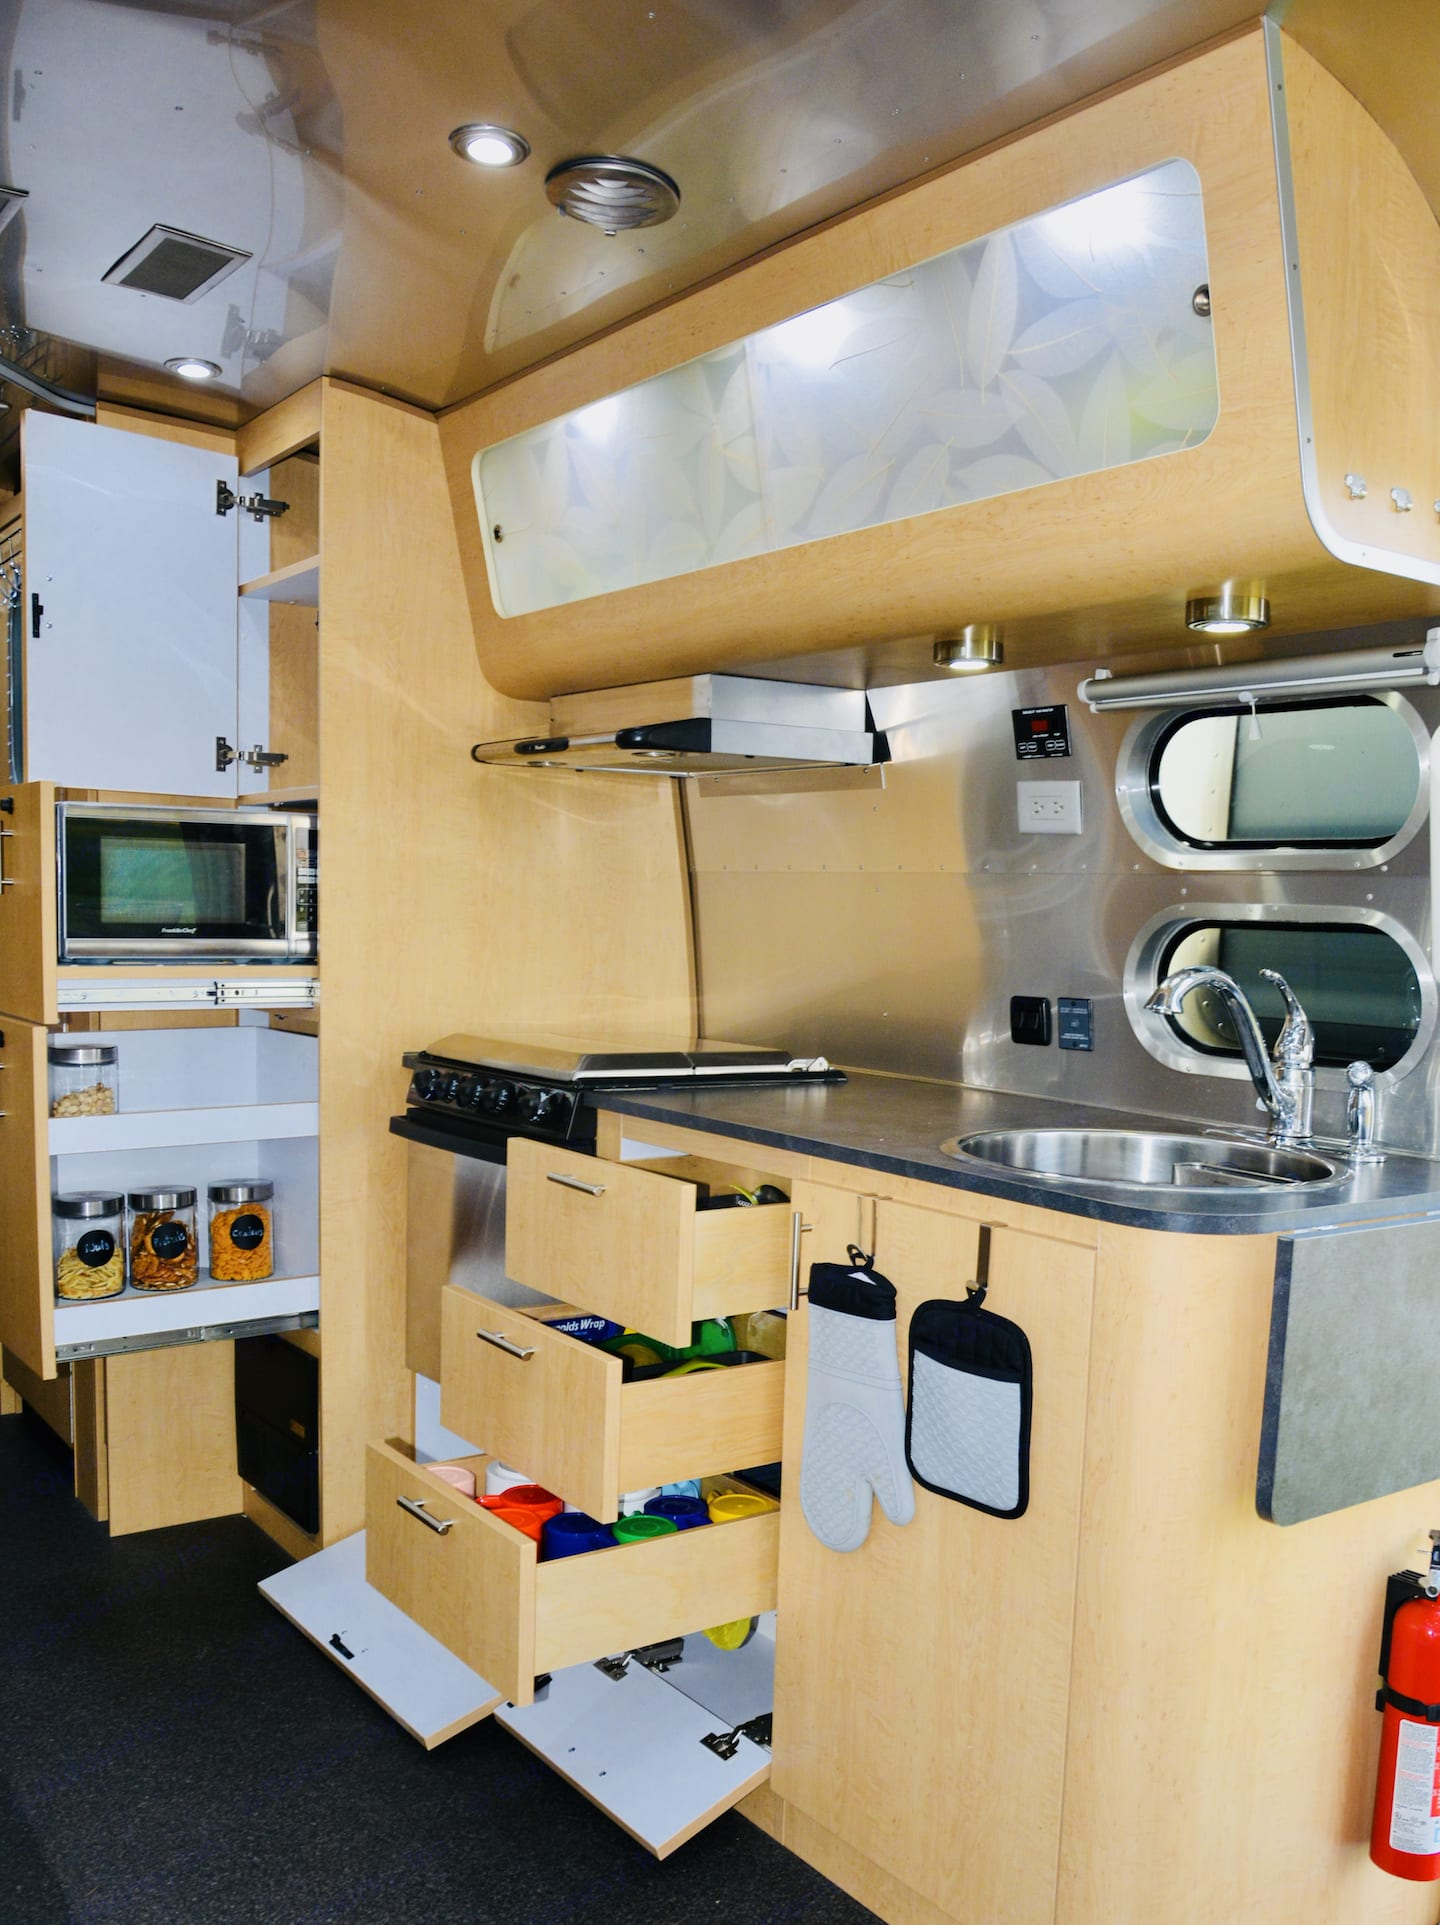 Microwave, Oven and Stovetop. Airstream Eddie Bauer 2015